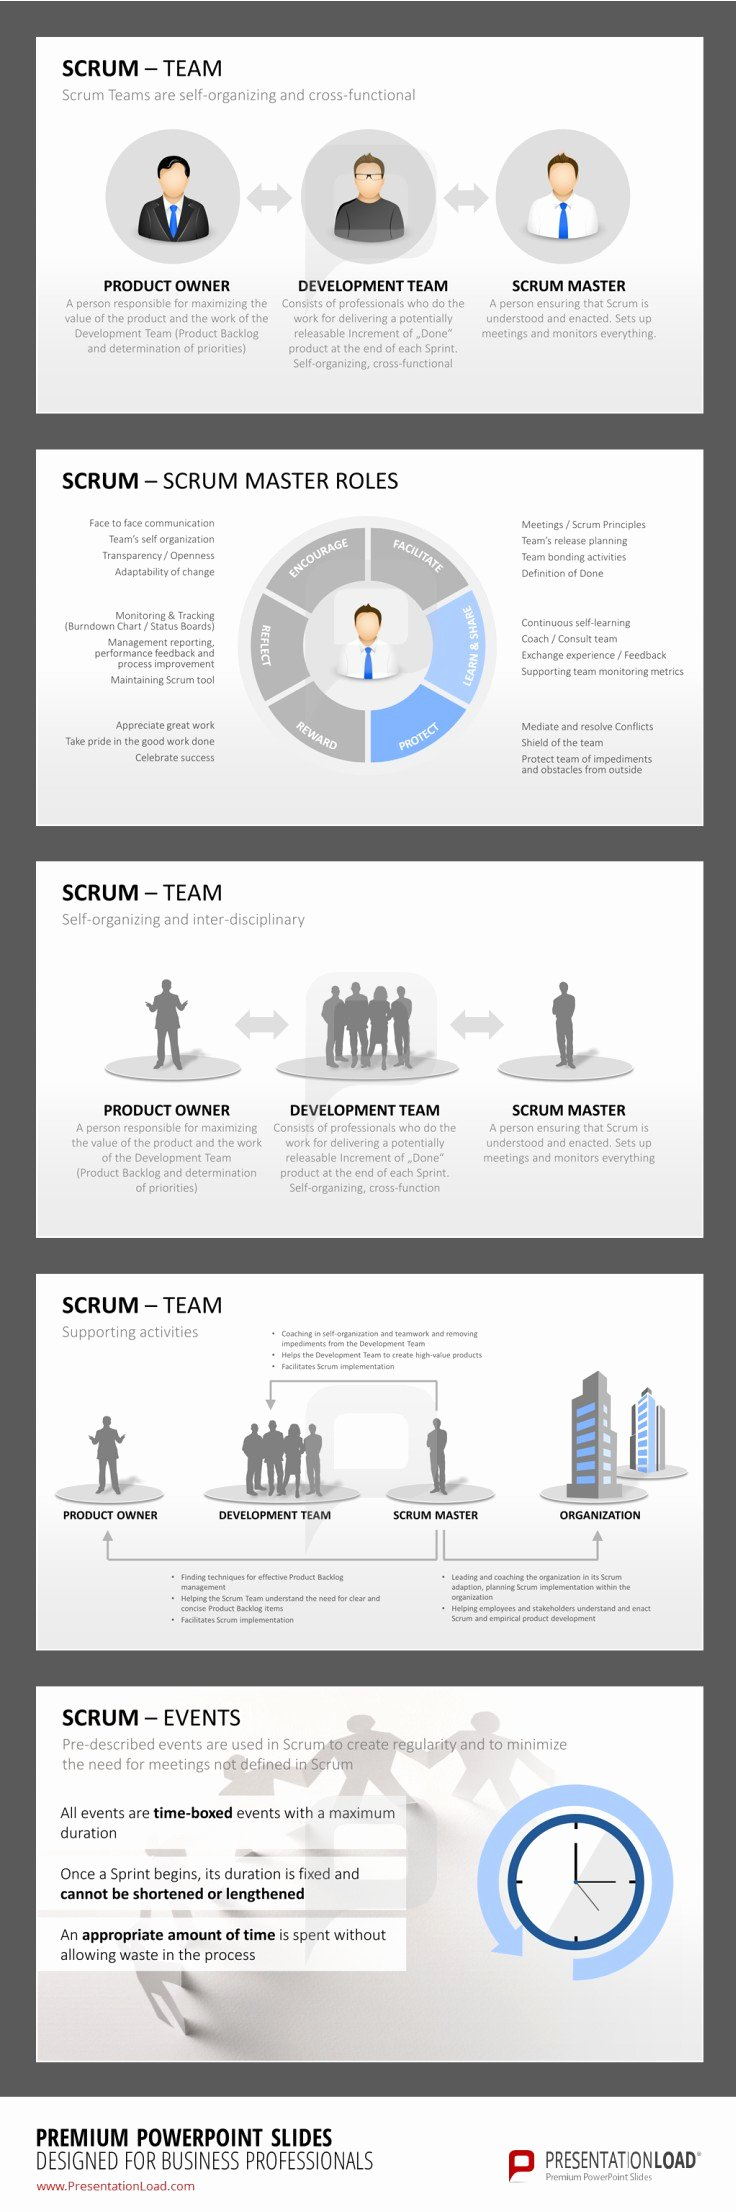 User Story Template Excel Awesome Scrum Spreadsheet Agile Project Management Excel Template